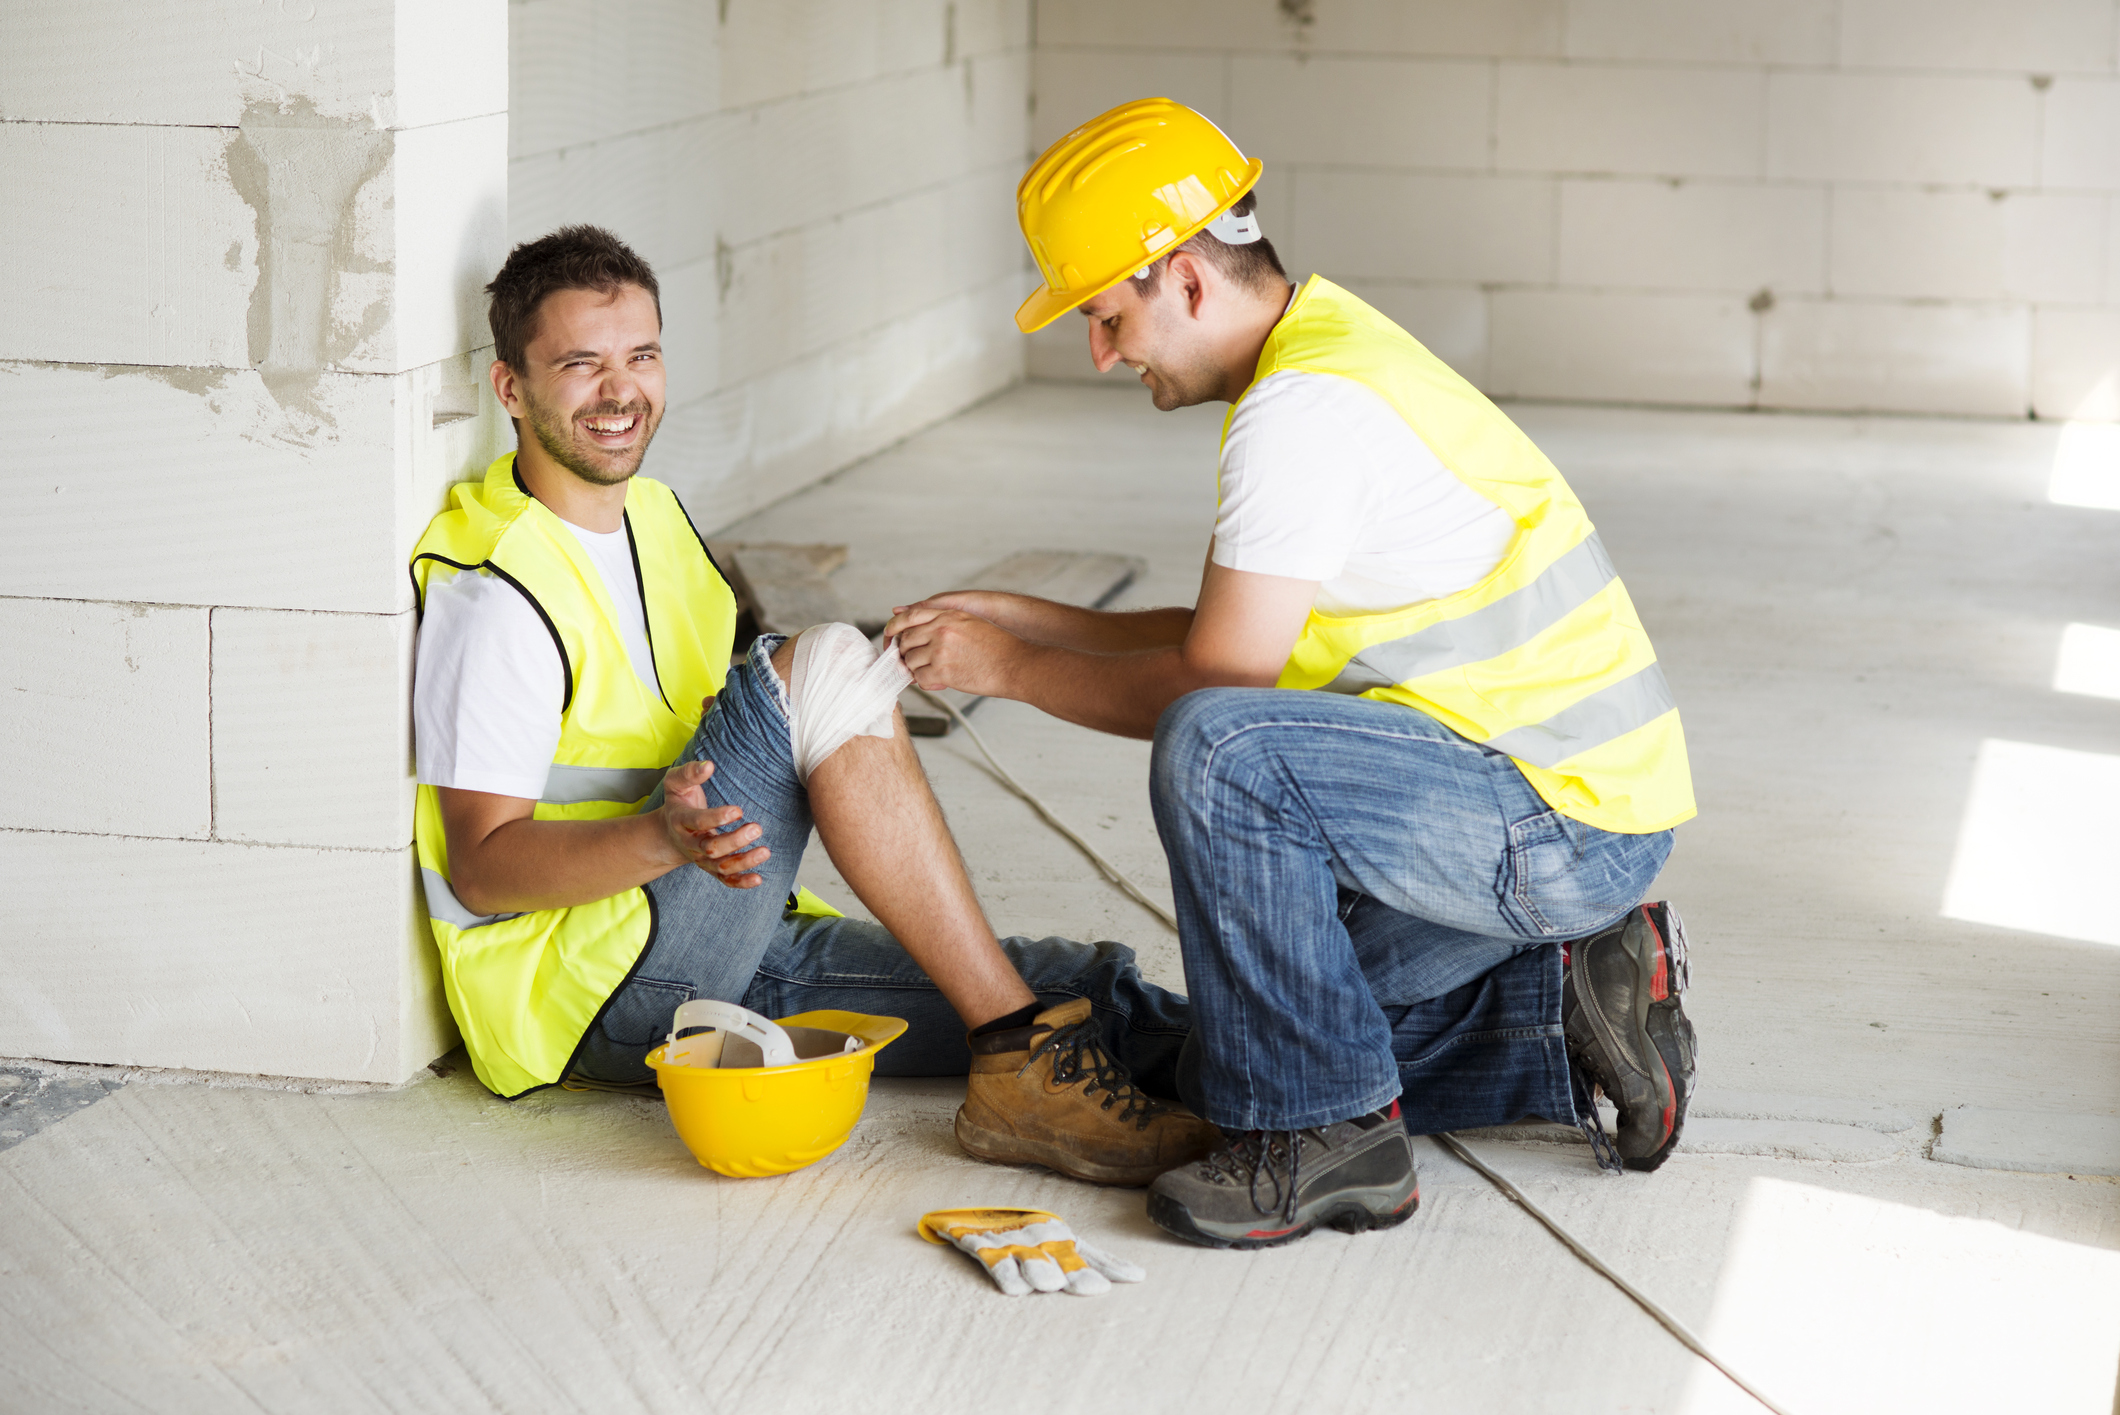 Man workplace physical injury with colleague helping to manage his knee